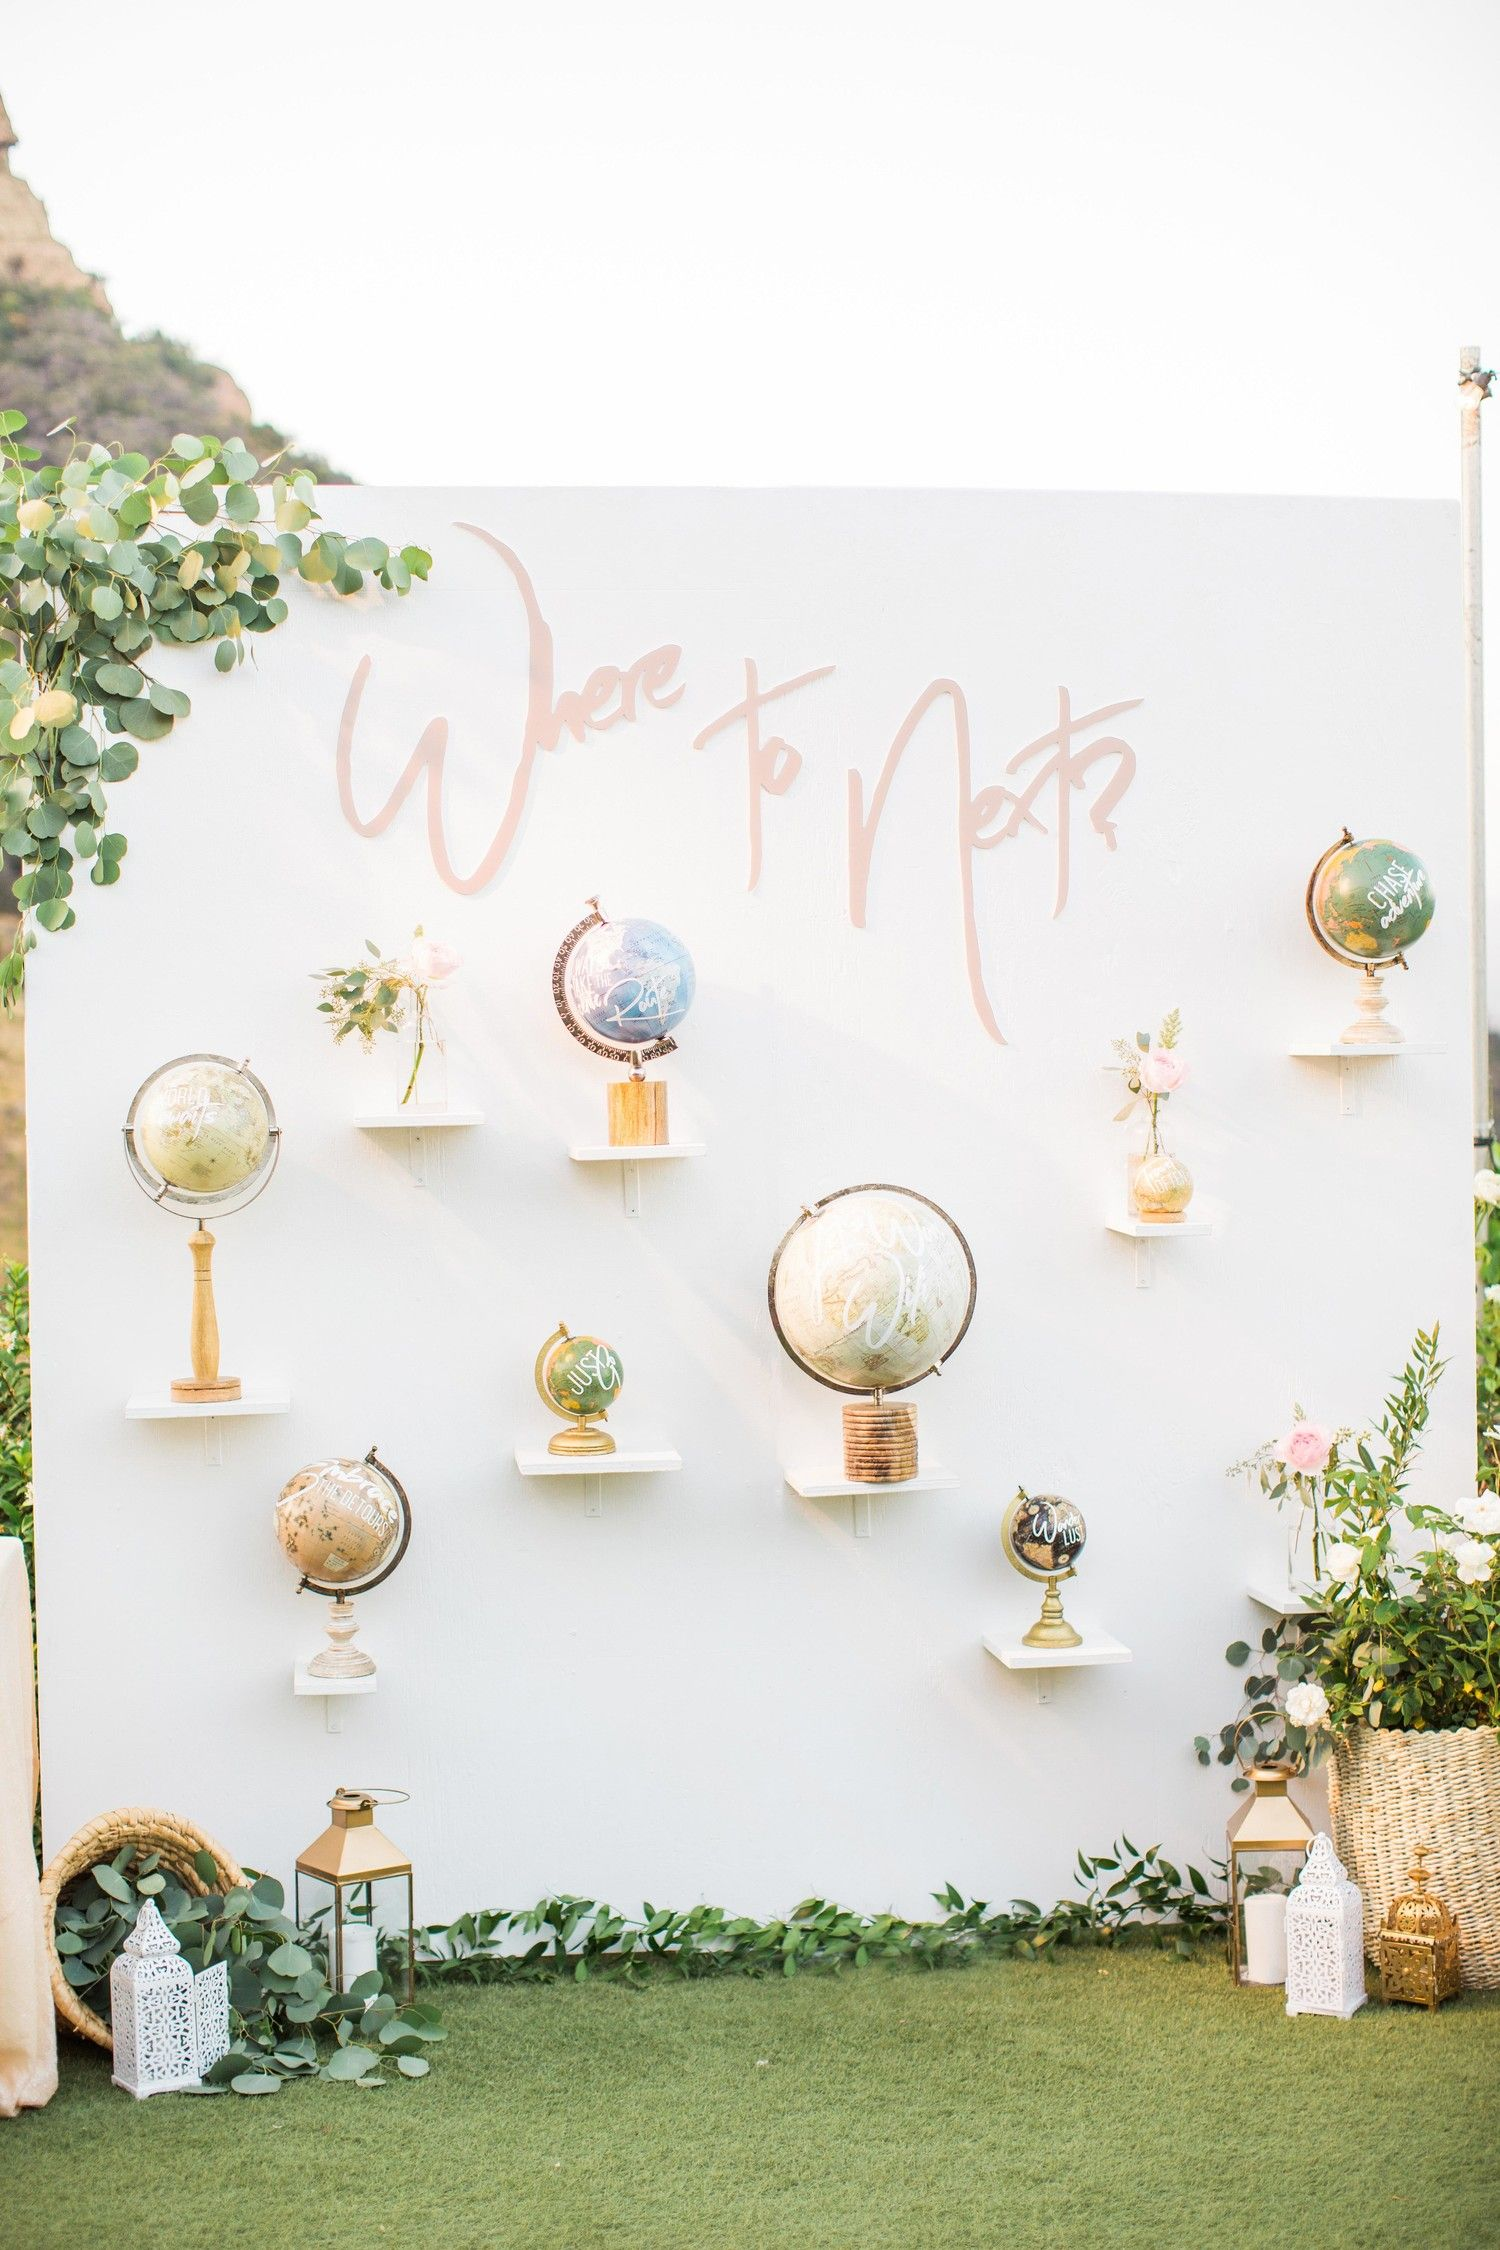 Wedding decorations list   Cocktail Hour Ideas from Real Weddings  Around the world